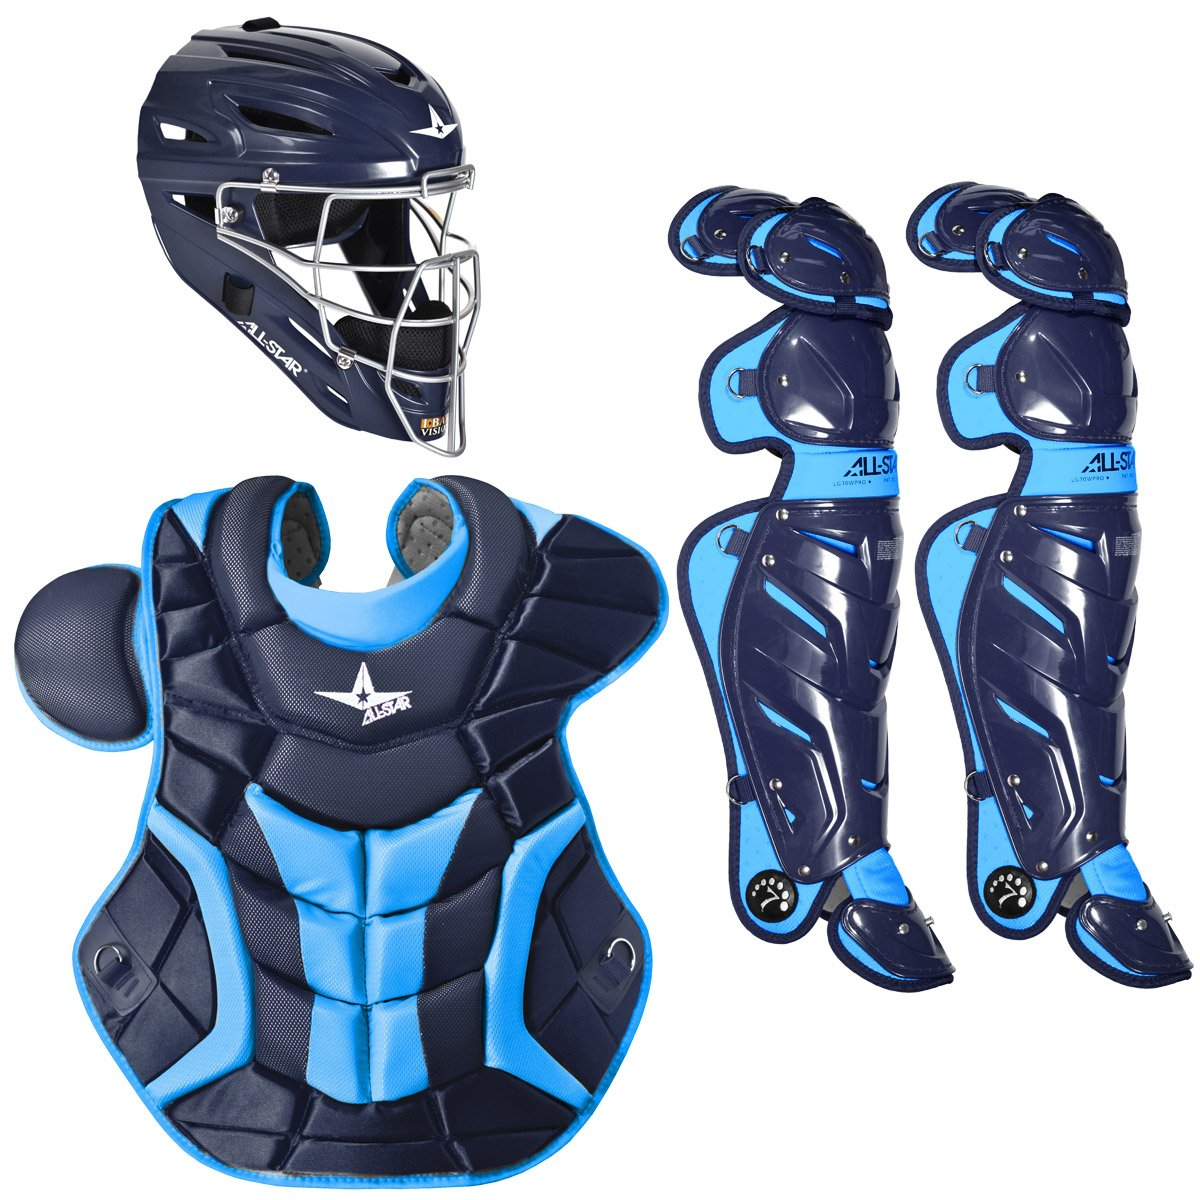 Baseball catchers gear baseball catchers gear set - All Star S System 7 Pro Gear Set Is A 3 Piece Package That Comes With A Hockey Style Helmet A Chest Protector With Wraparound Adjustable Sides And Two